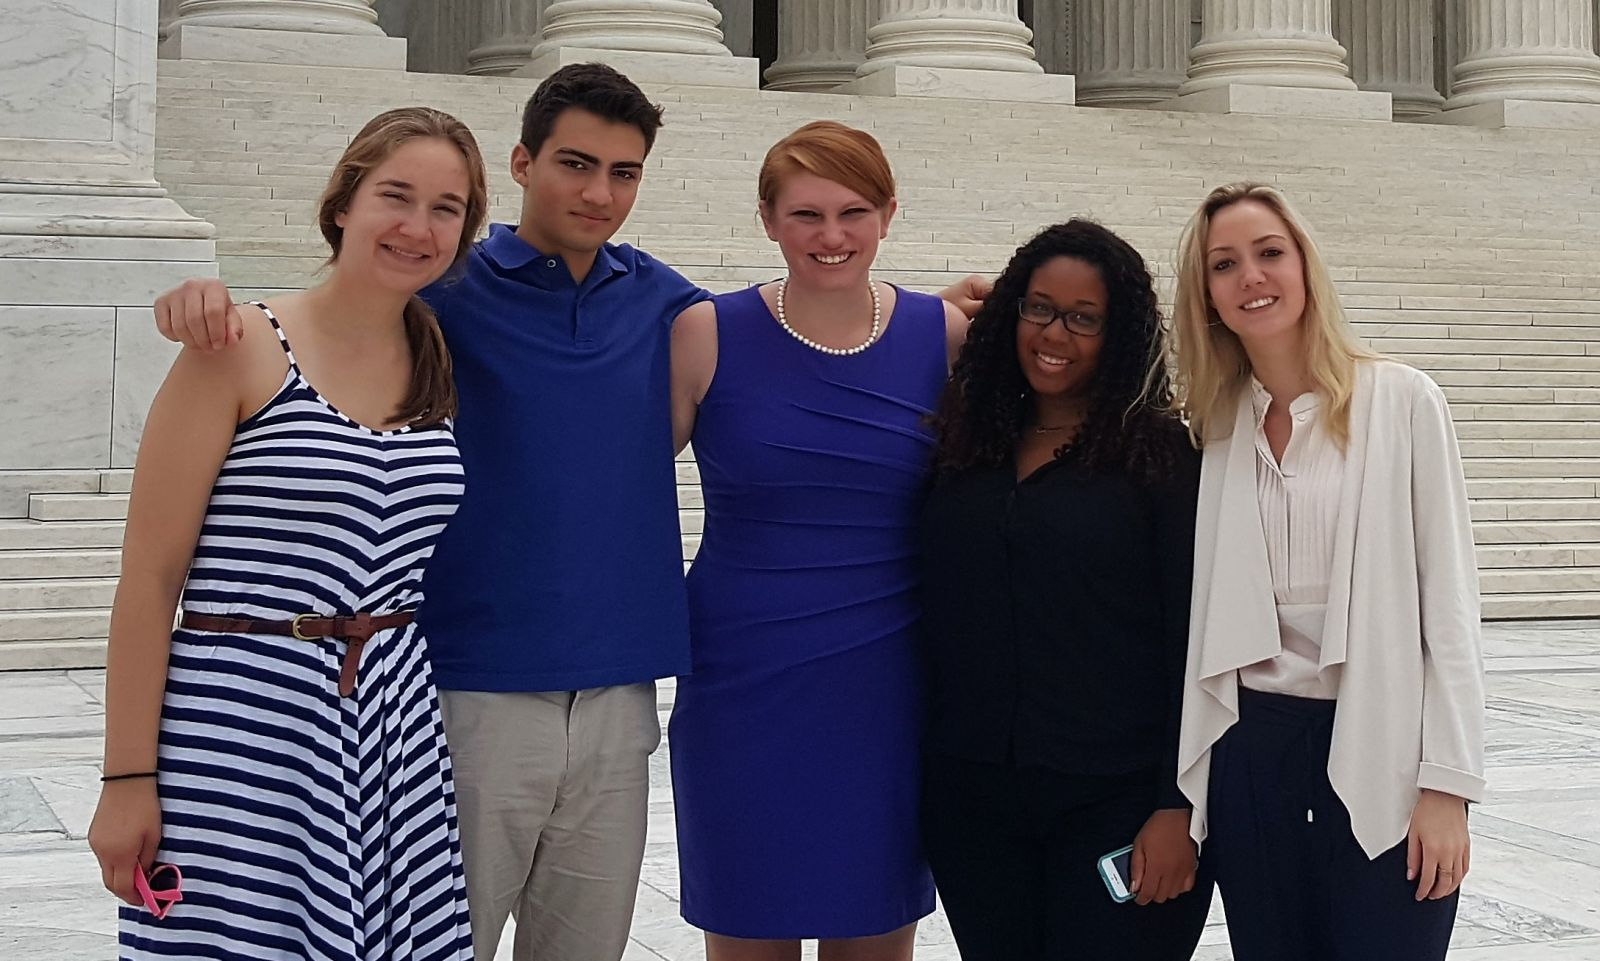 CCE interns after touring the U.S. Supreme Court